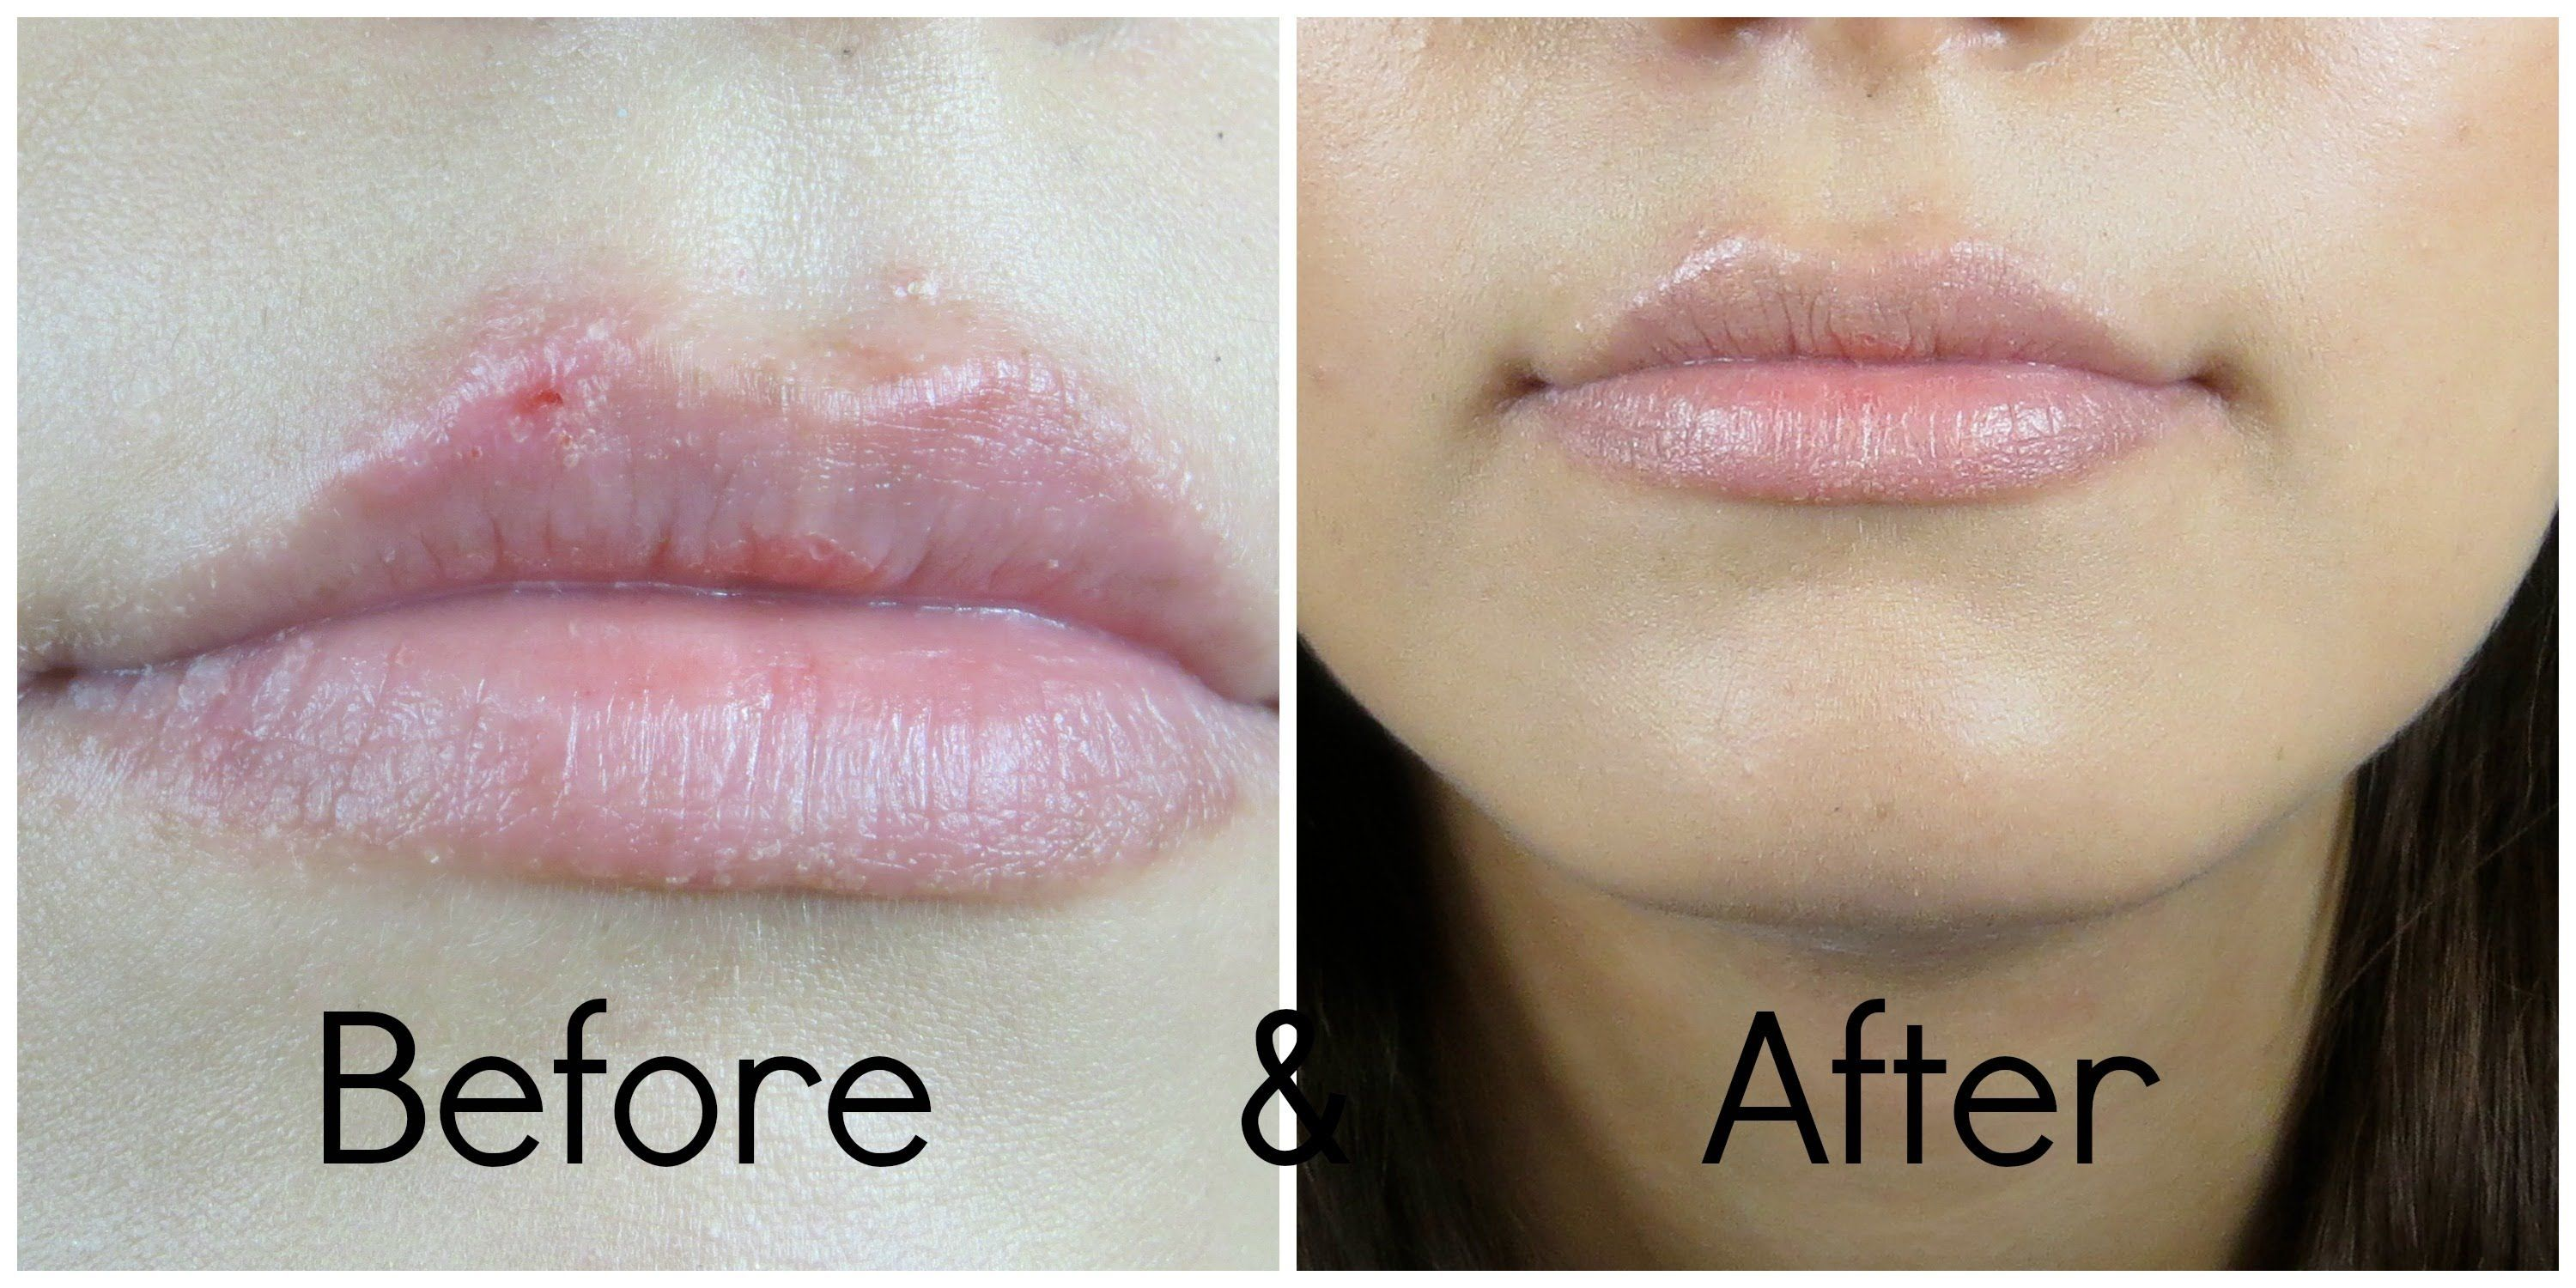 5a54731110e3ae7dda2a3d563fe65af6 - How To Get Rid Of Cold Sores Before They Appear